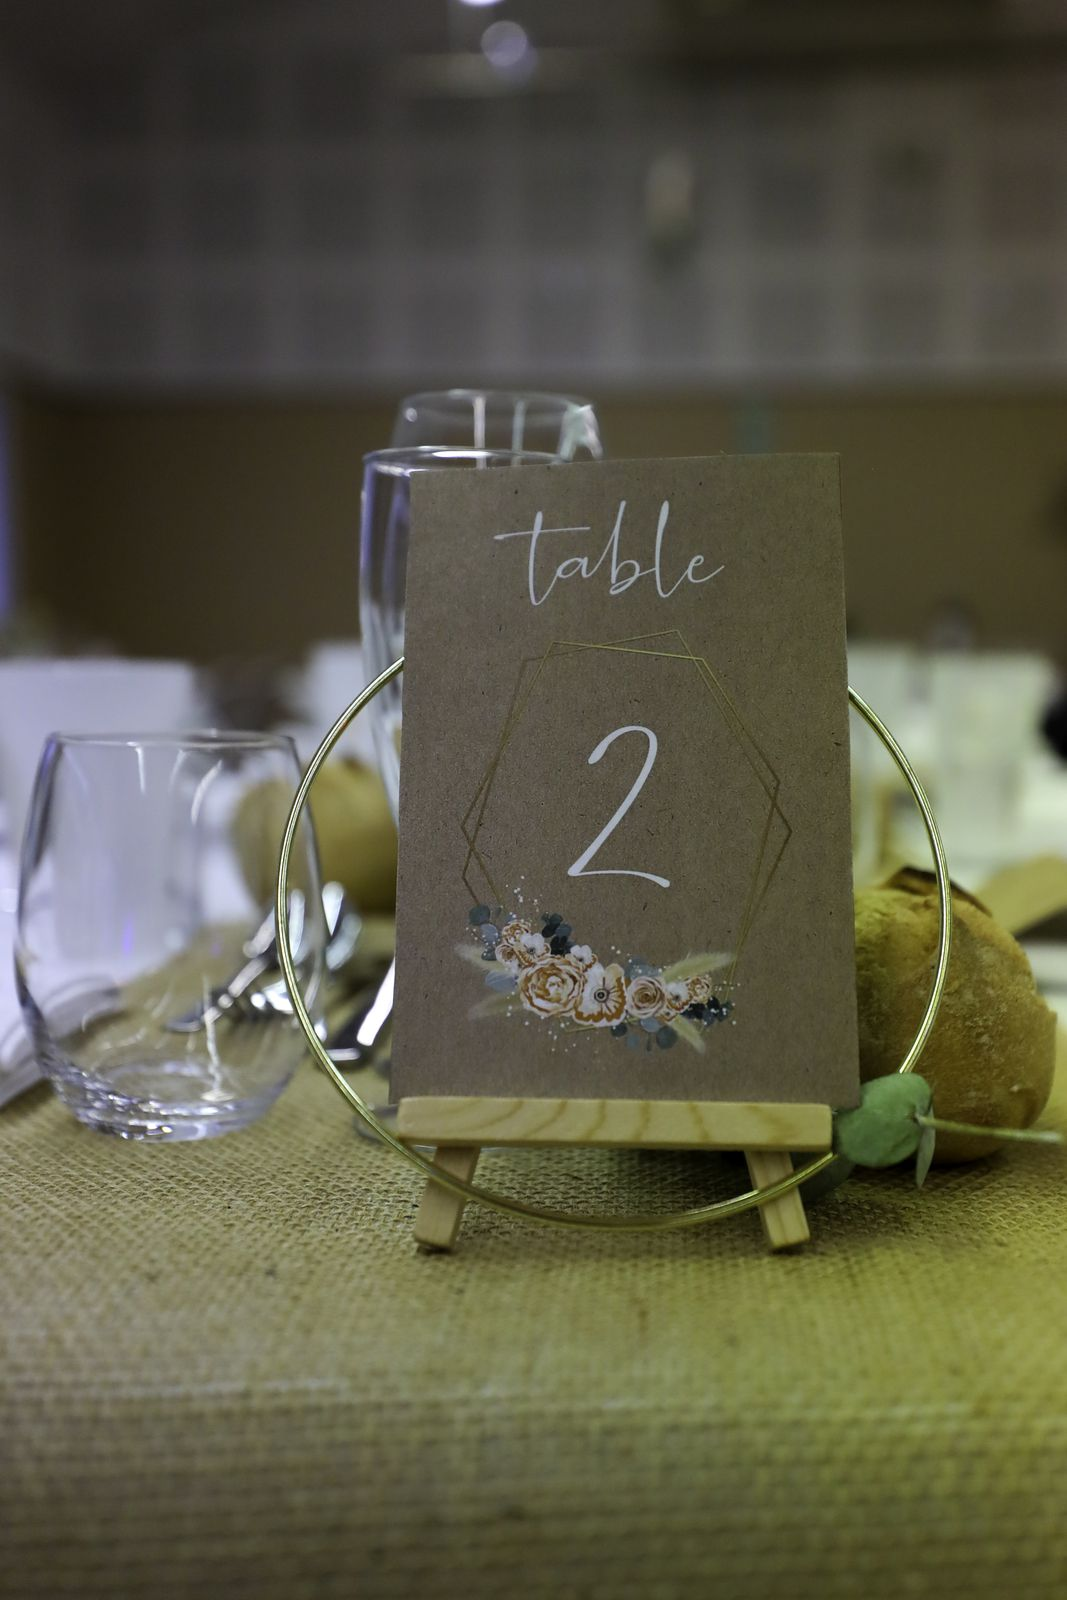 n° de table simple recto 10x15cm impression fond type kraft pampa floral et badges invités #efdcbysoscrap assortis au faire part de mariage